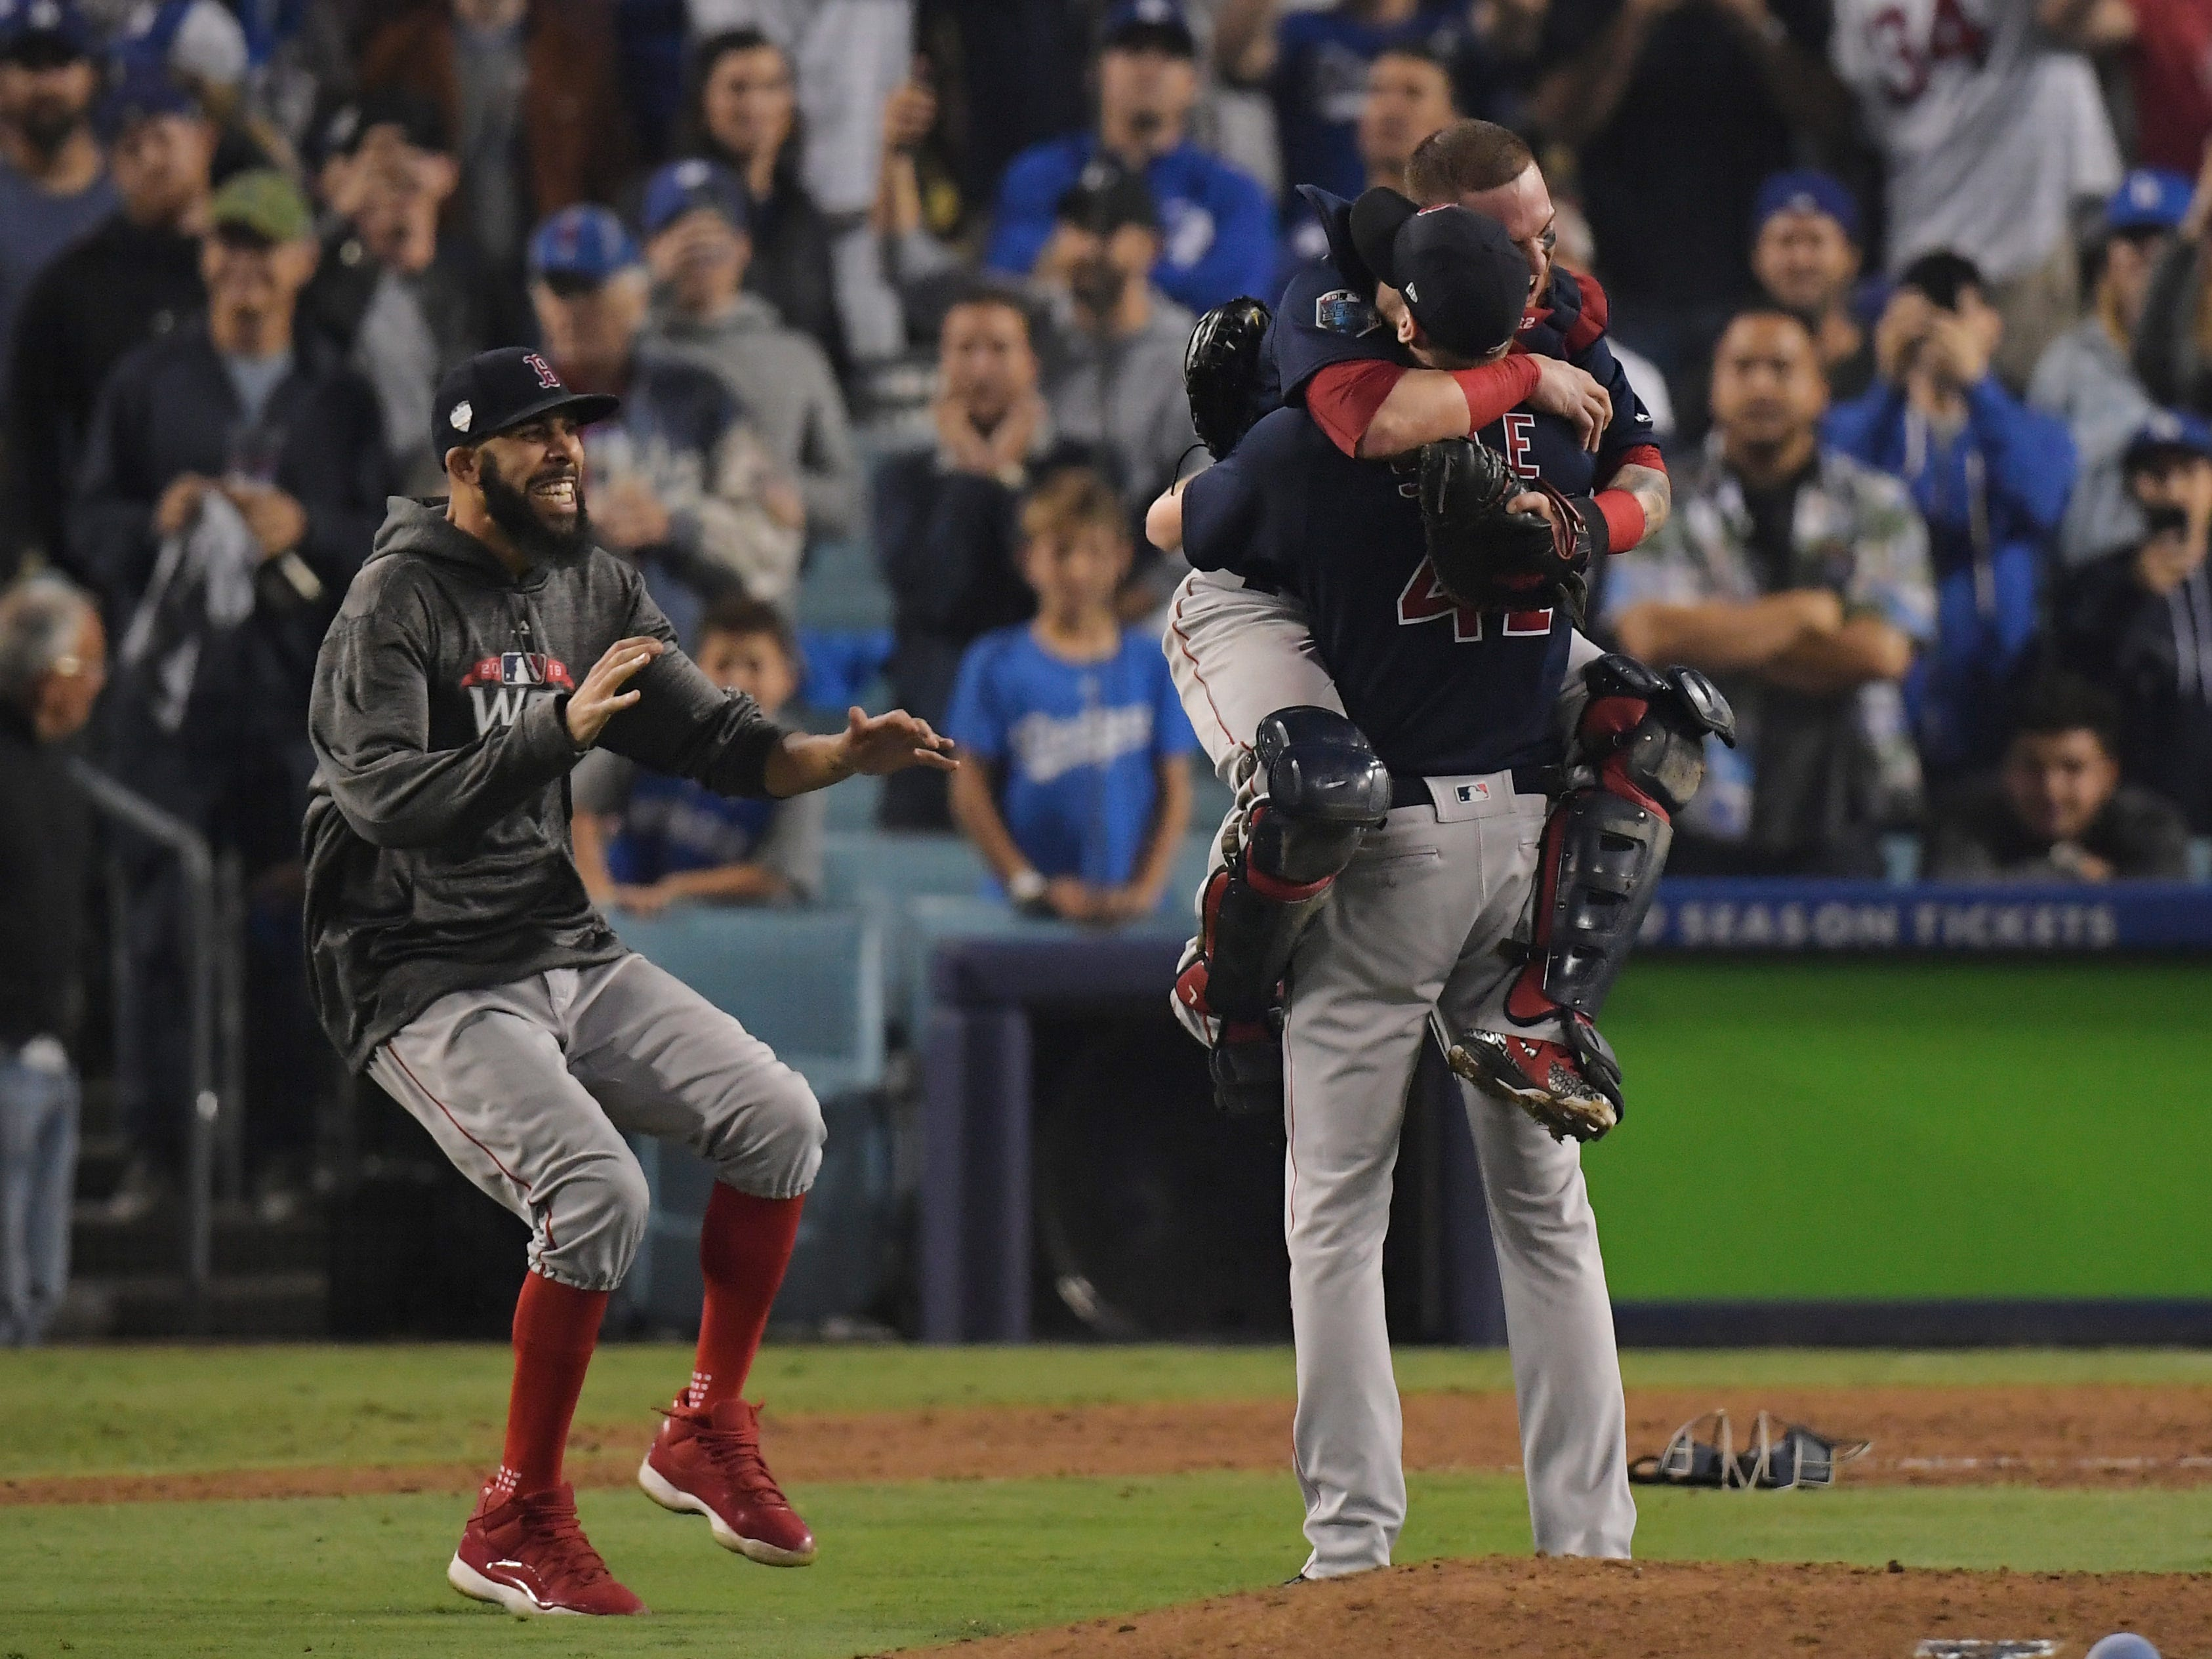 From left, Boston Red Sox's David Price, catcher Christian Vazquez and Chris Sale celebrate after Game 5 of baseball's World Series against the Los Angeles Dodgers on Sunday, Oct. 28, 2018. The Red Sox won 5-1 to win the series 4 games to 1.